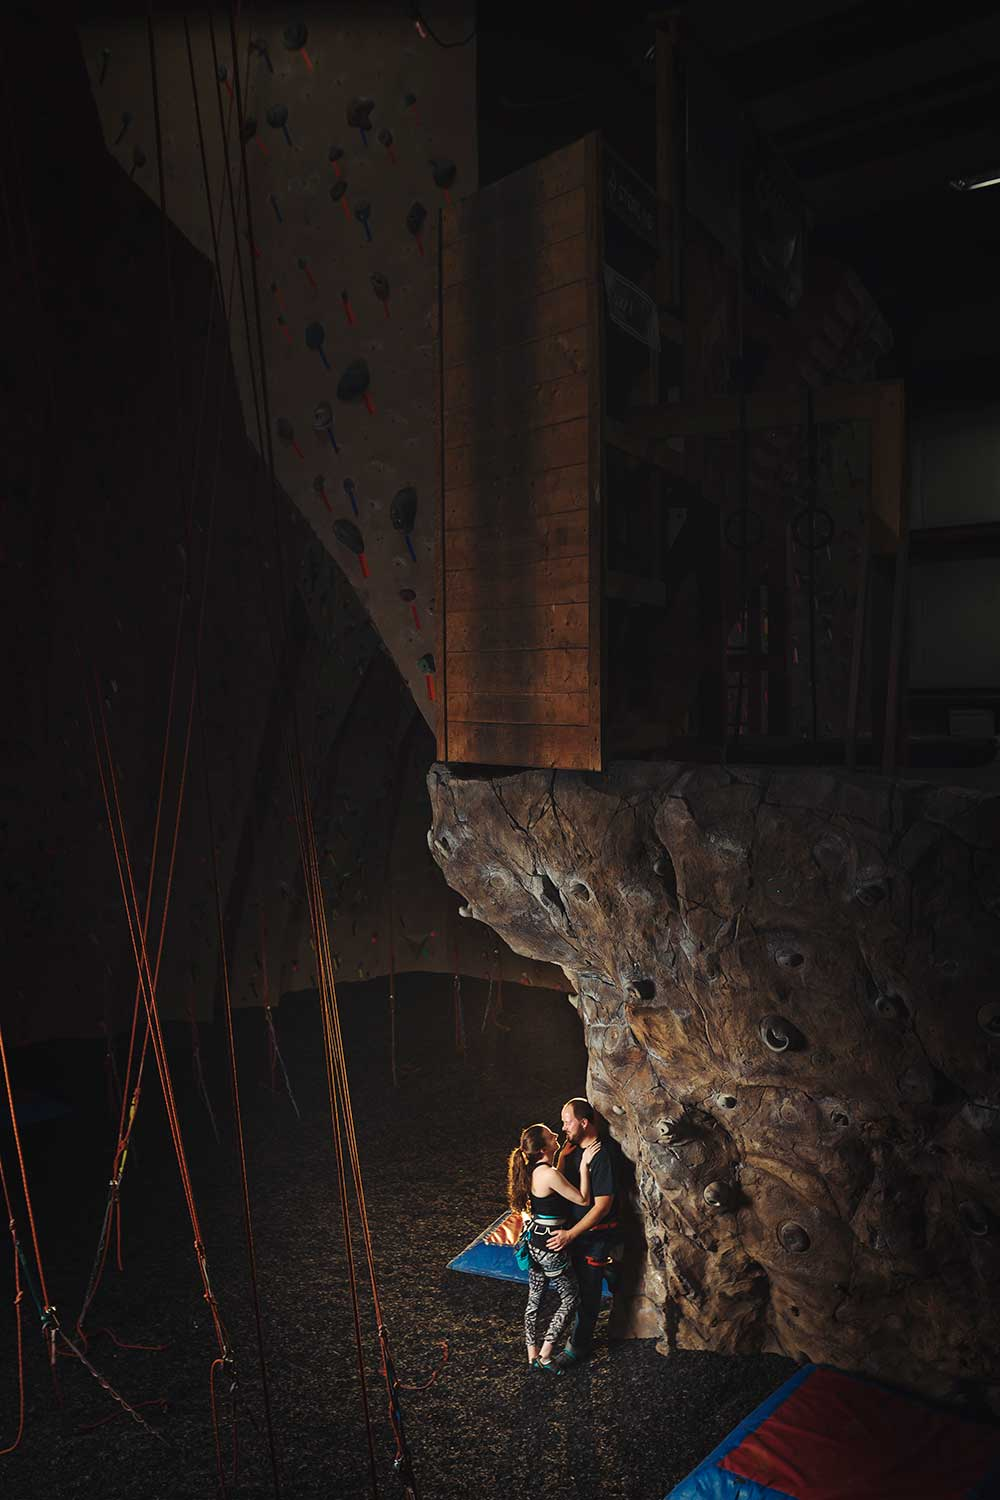 Berks county rock climbers